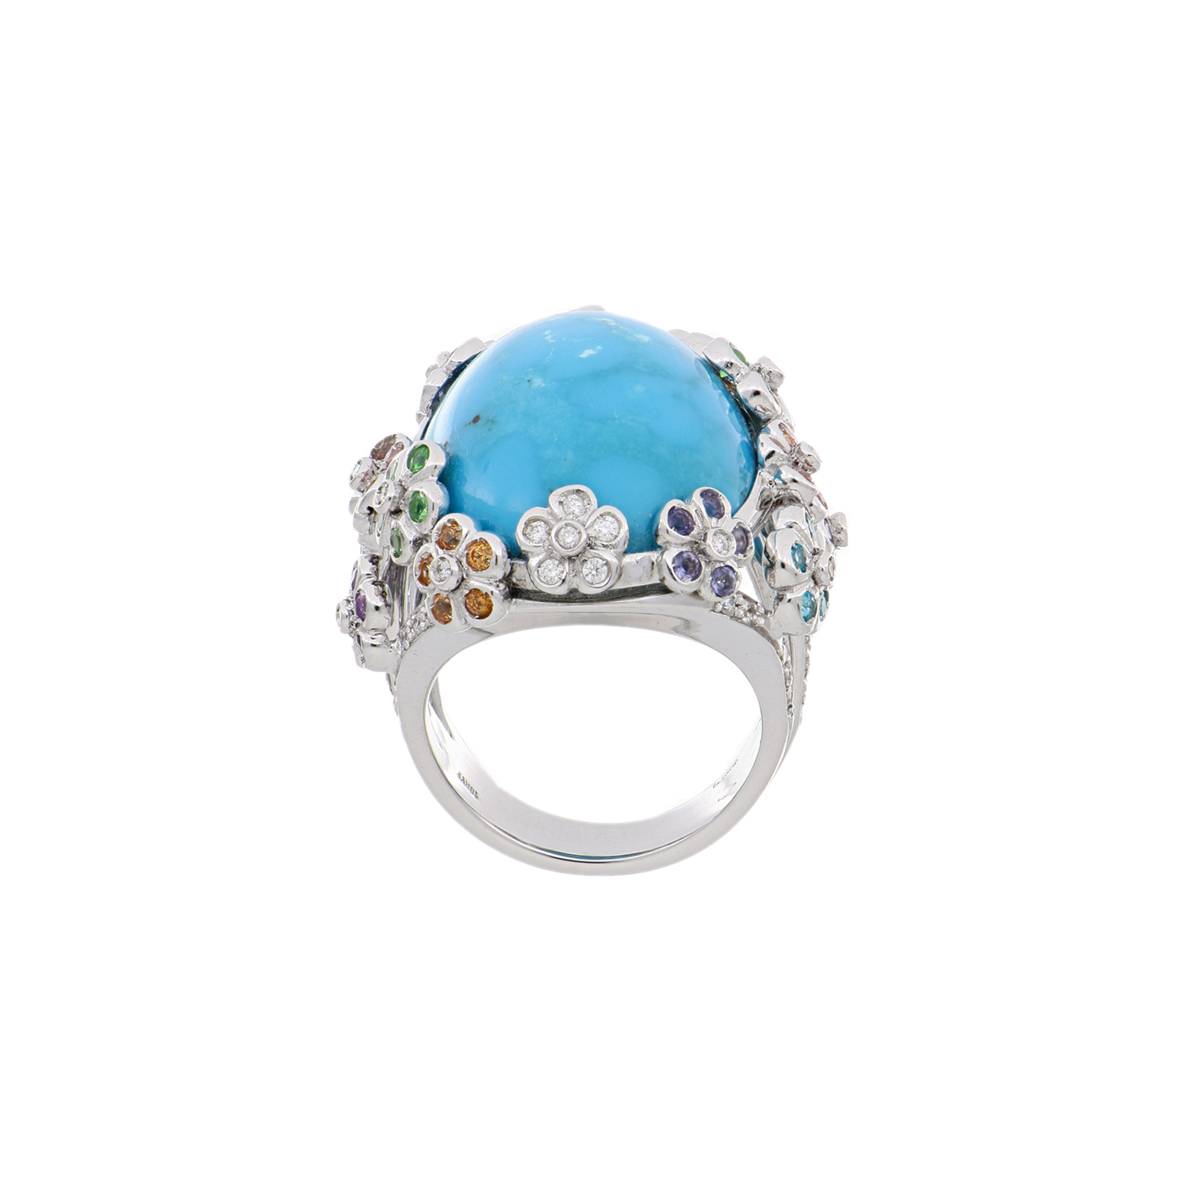 Turquoise Ring with Multi-Gemstones